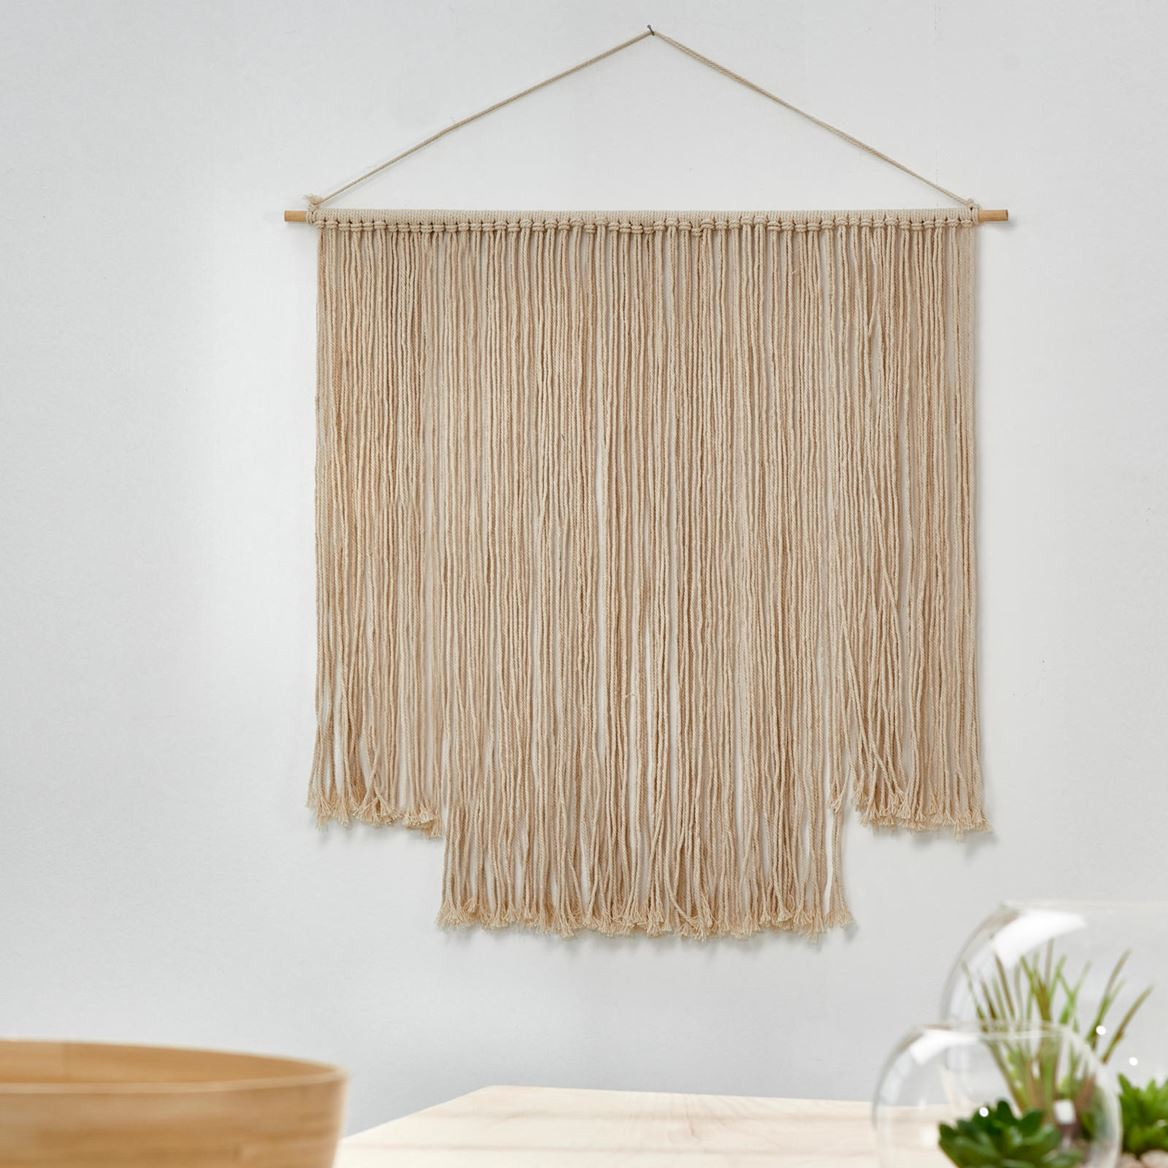 WHISPER Decoración de pared natural An. 60 x L 60 cm_whisper-decoración-de-pared-natural-an--60-x-l-60-cm